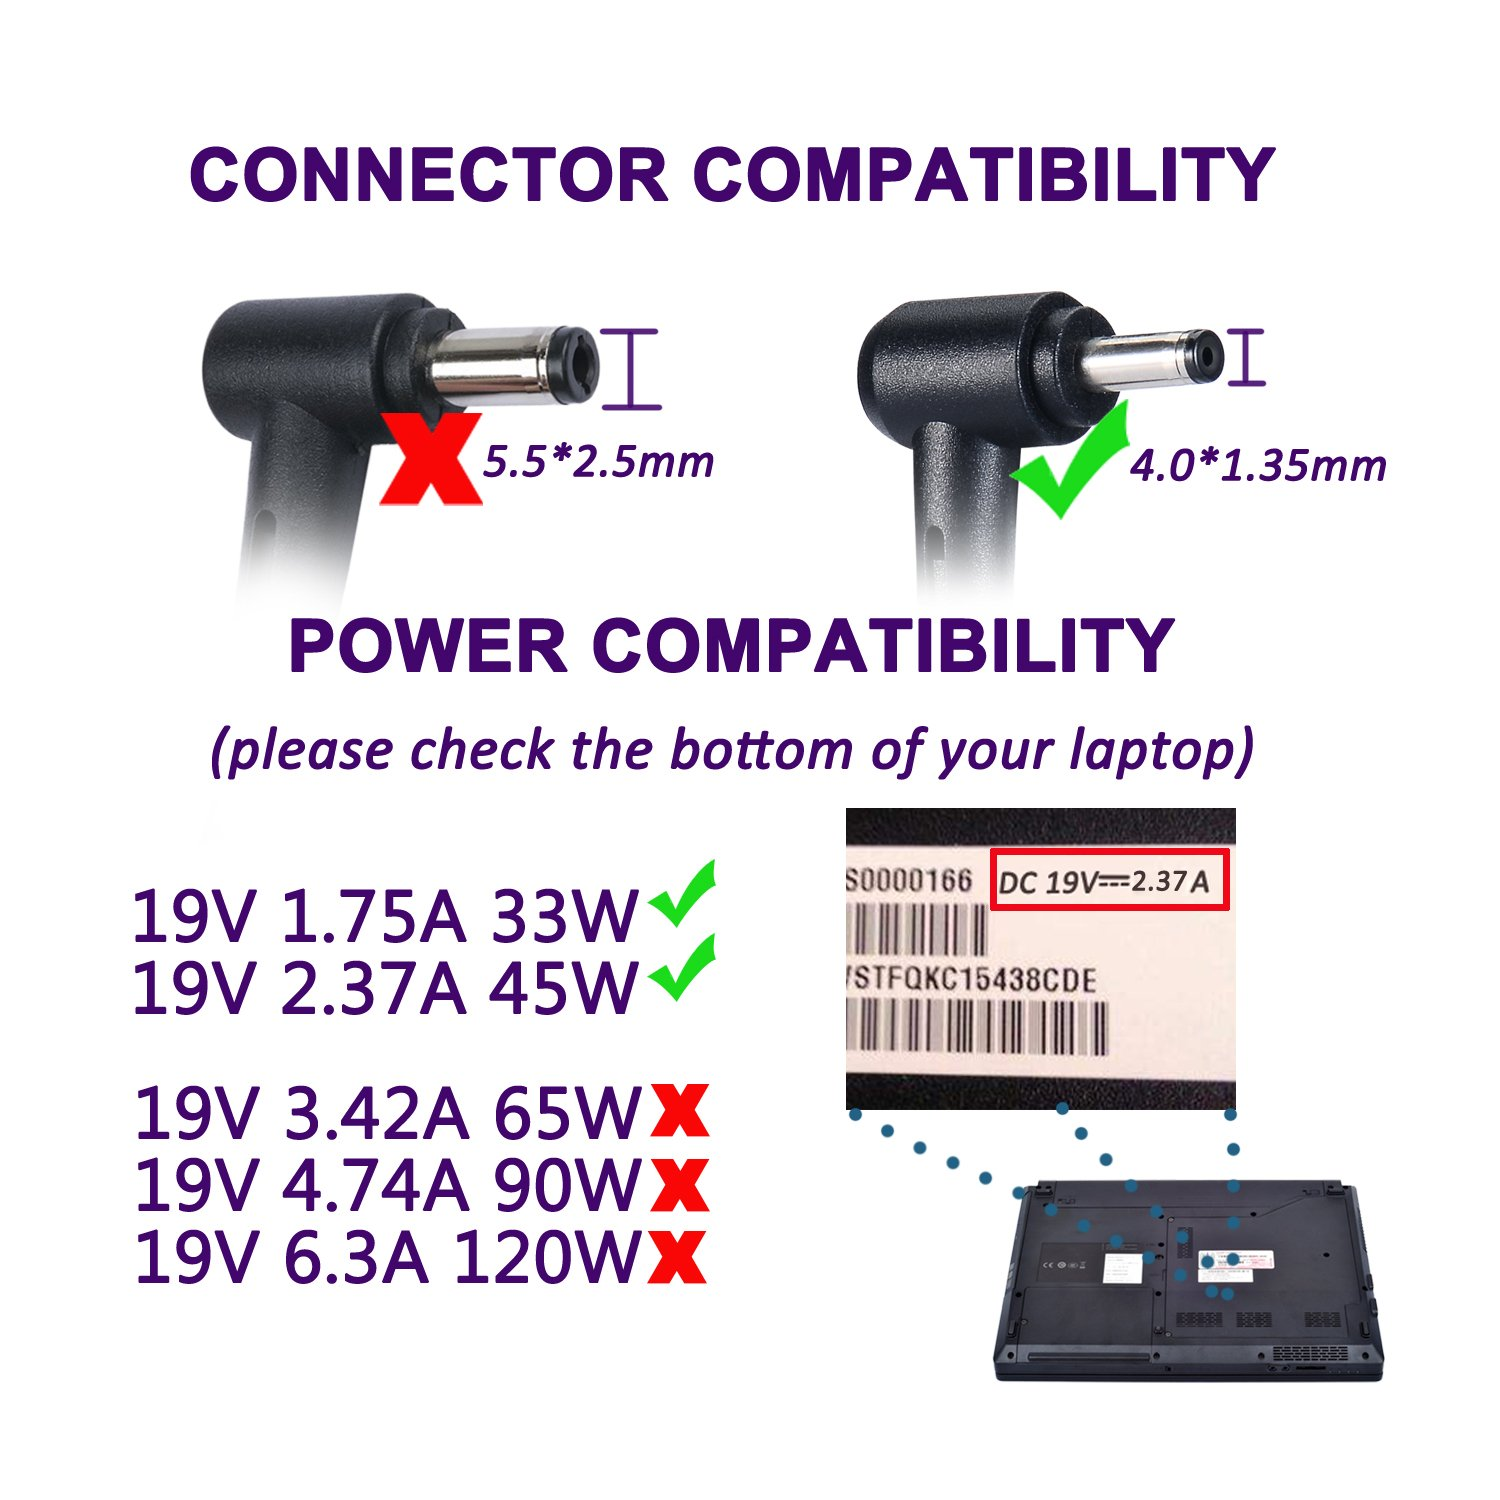 Laptop Power Supply 45W Notebook Charger for Asus UX330 UX330U UX360 UX360C UX305 UX305C X540 X541 F553 F553M F556 F556U F302 K556 K556U Taichi 21 31 ASUS AC Adapter (45W 19V 2,37A & 33W 19V 1,75A) by Purpleleaf (Image #4)